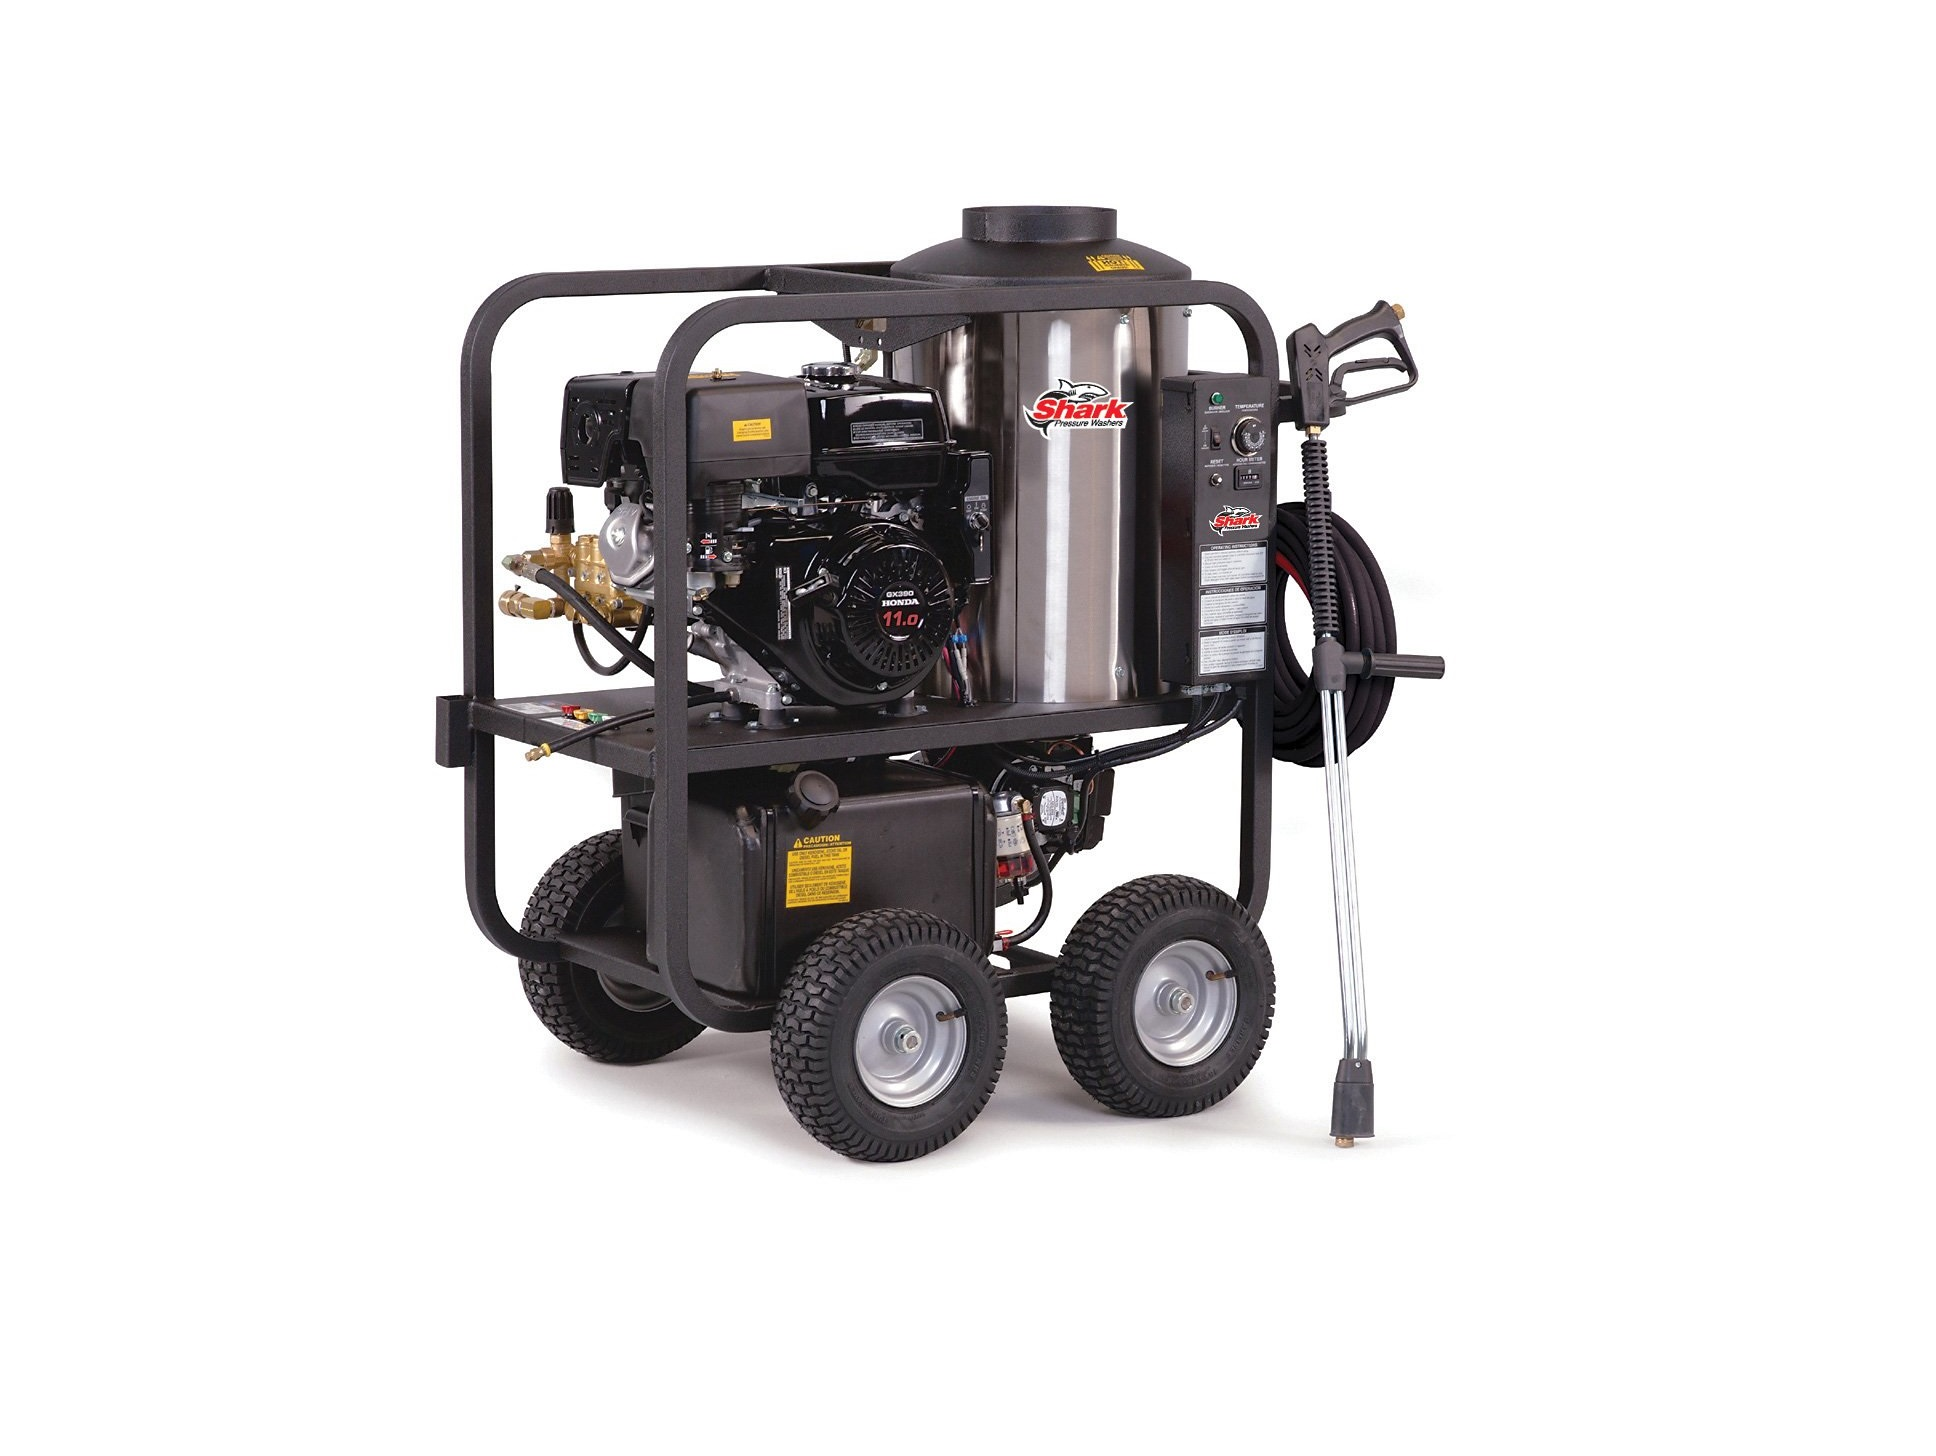 Top 5 Best Hot Water Pressure Washer in 2020 Reviews